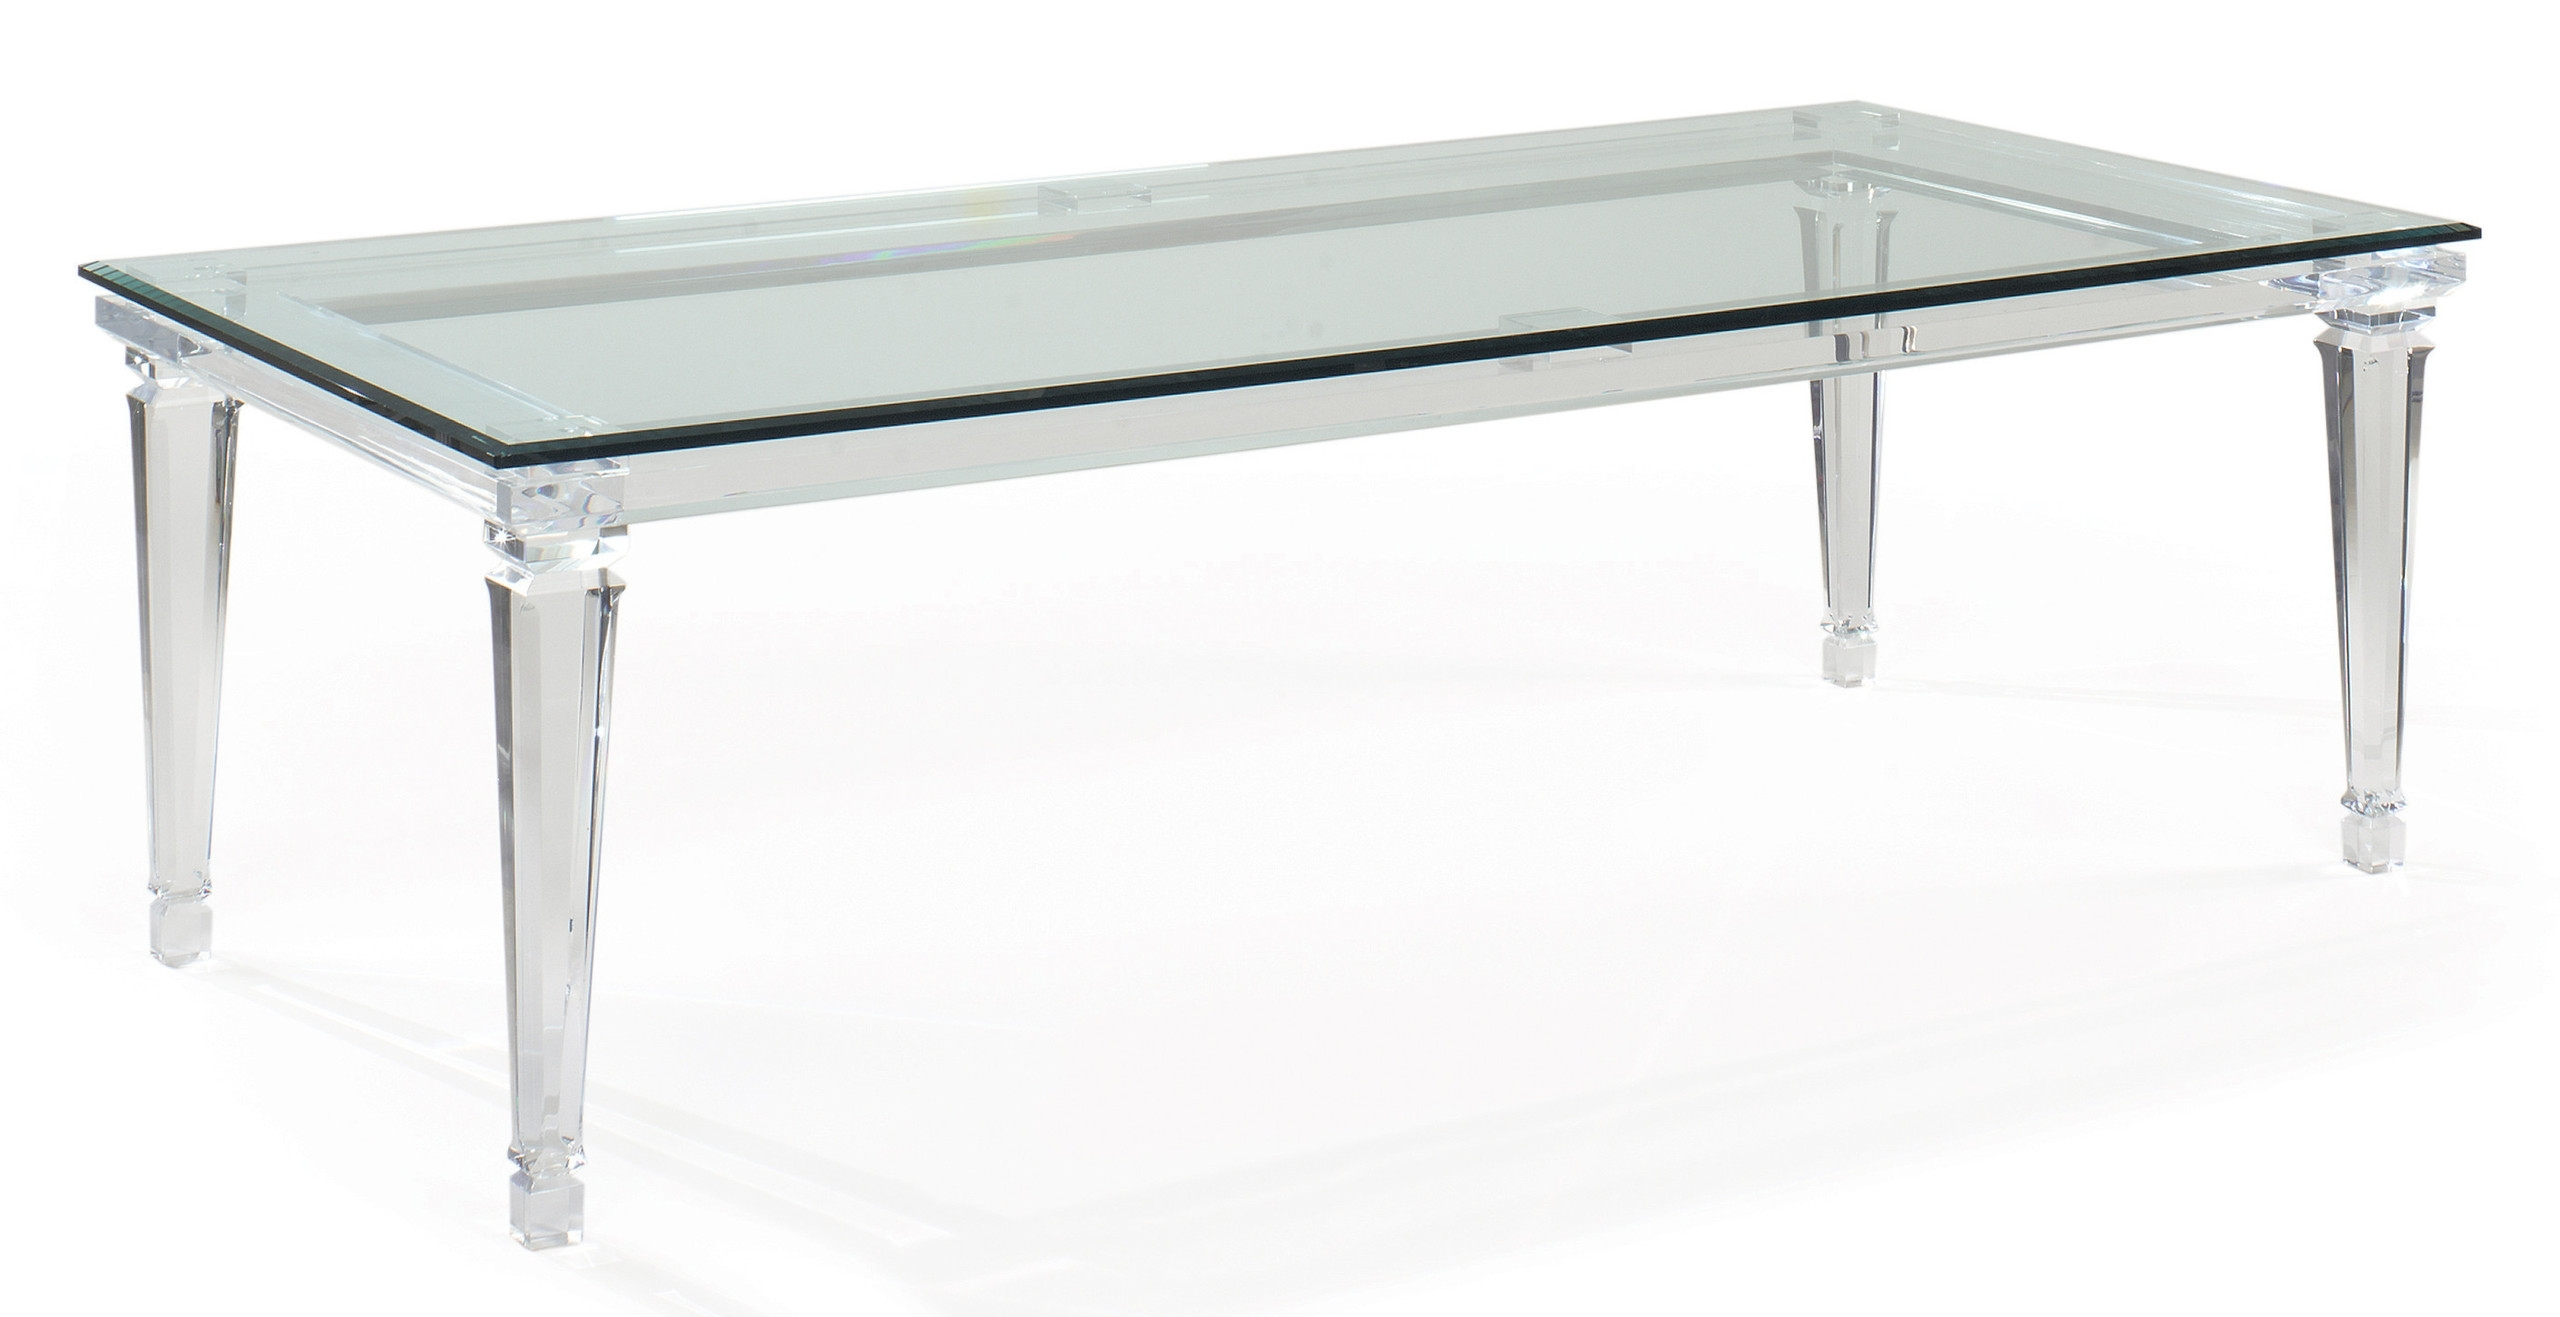 Acrylic Dining Tables Throughout Most Current Sancerre Acrylic Dining Table (View 3 of 25)